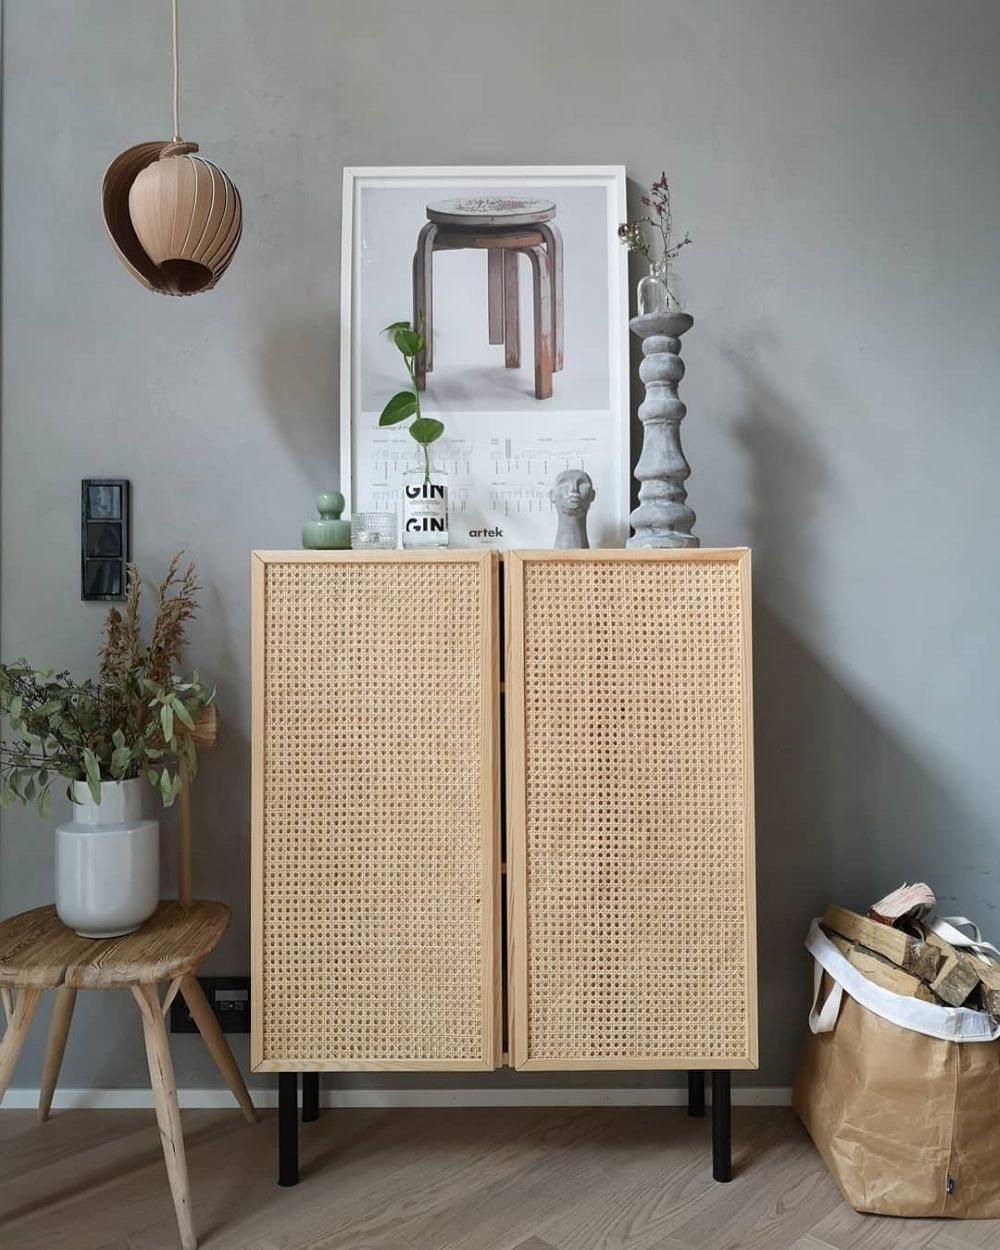 9 Seriously Stylish IKEA IVAR Cabinet Hacks, That Won't break the Bank! • Grillo Designs